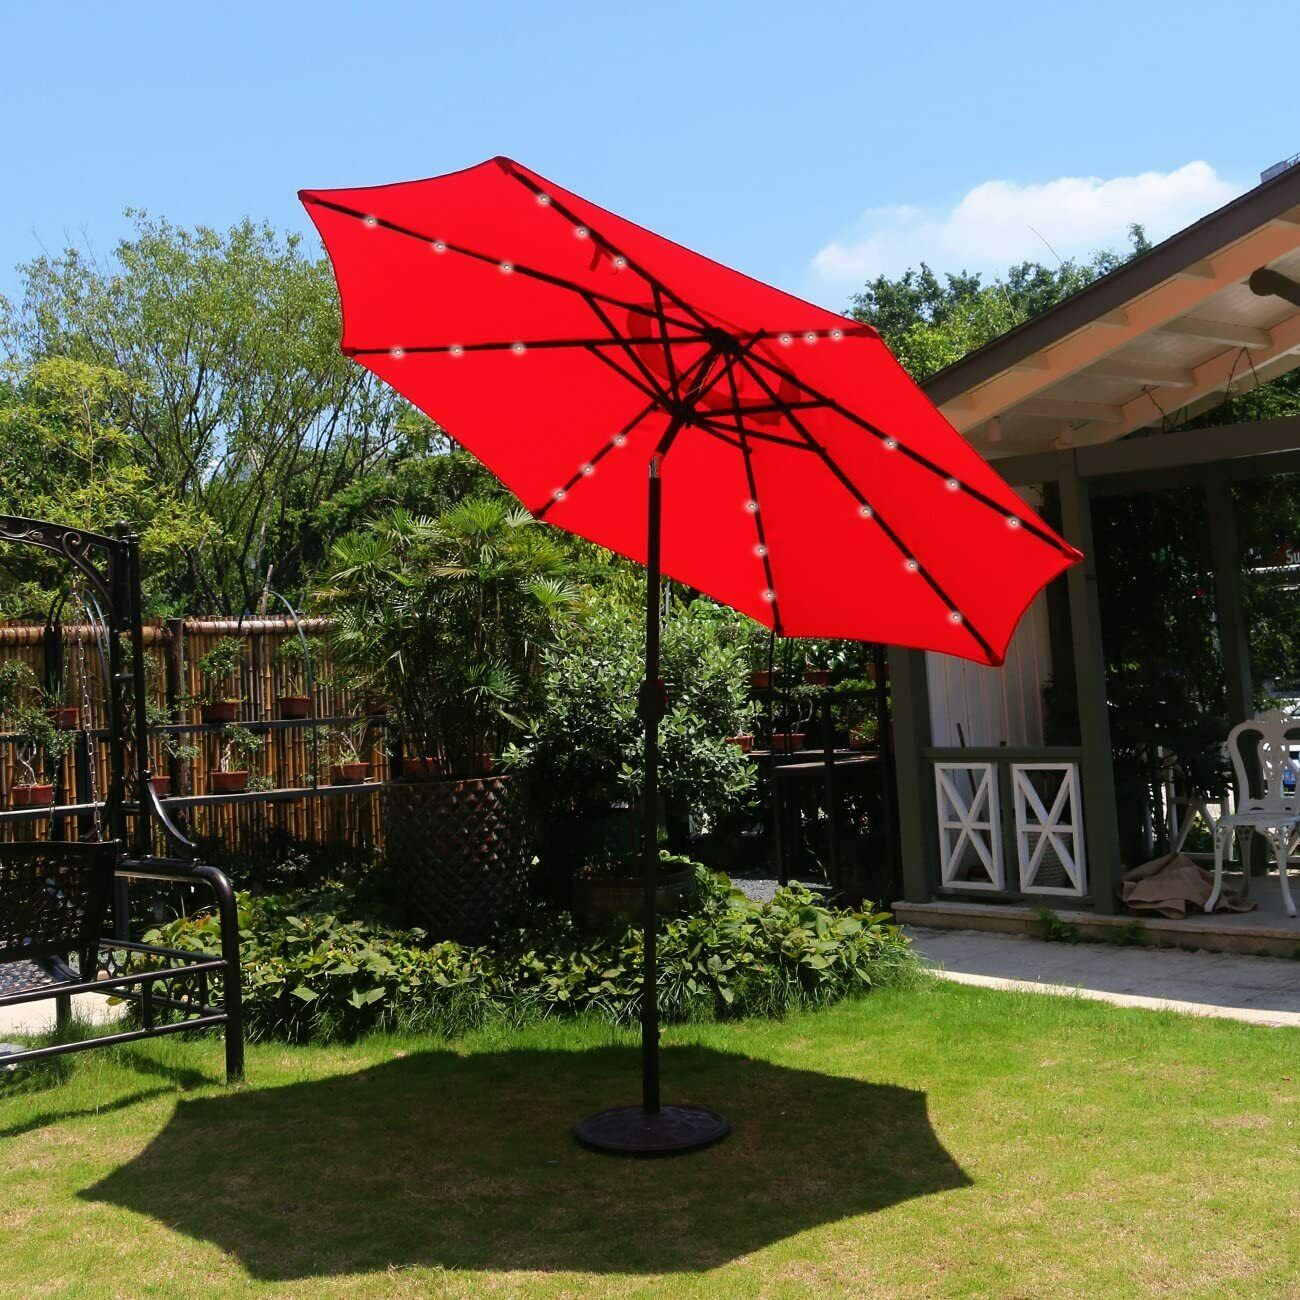 Sunnyglade 9 Solar 24 LED Lighted Patio Umbrella with 8 Ribs// Tilt Adjustment and Crank Lift System Red